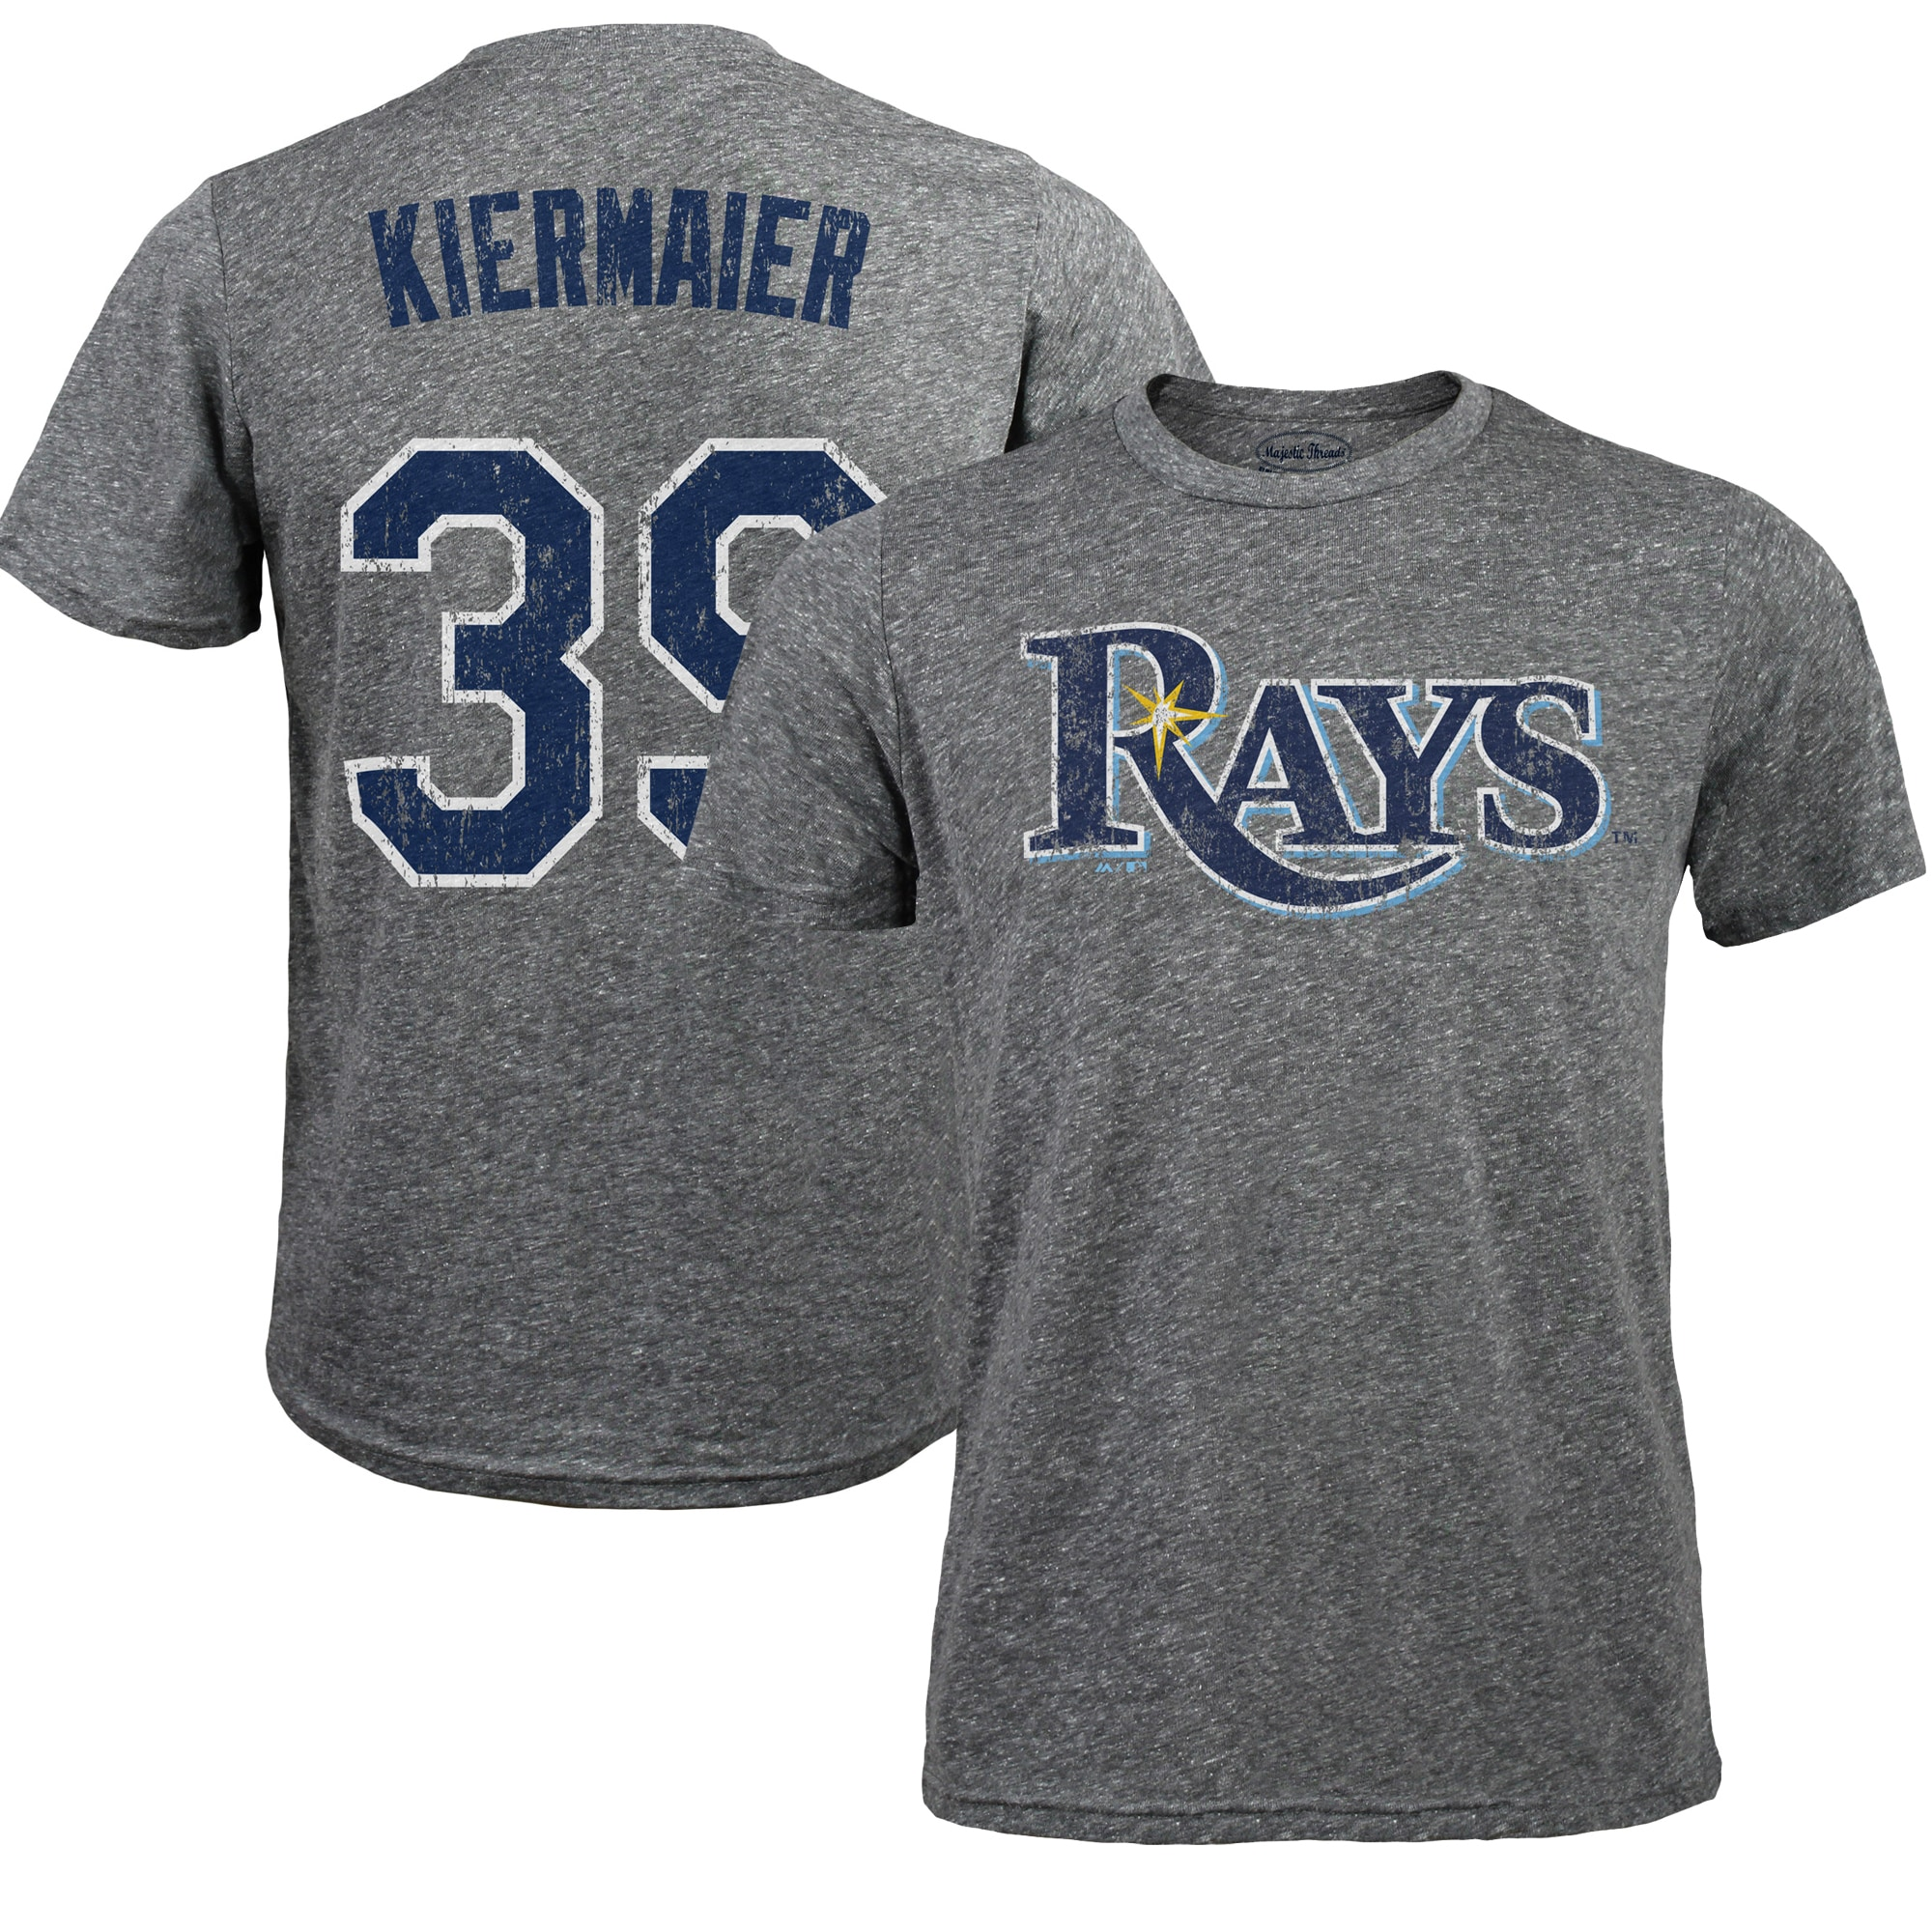 Kevin Kiermaier Tampa Bay Rays Majestic Threads Premium Tri-Blend Name & Number T-Shirt - Gray